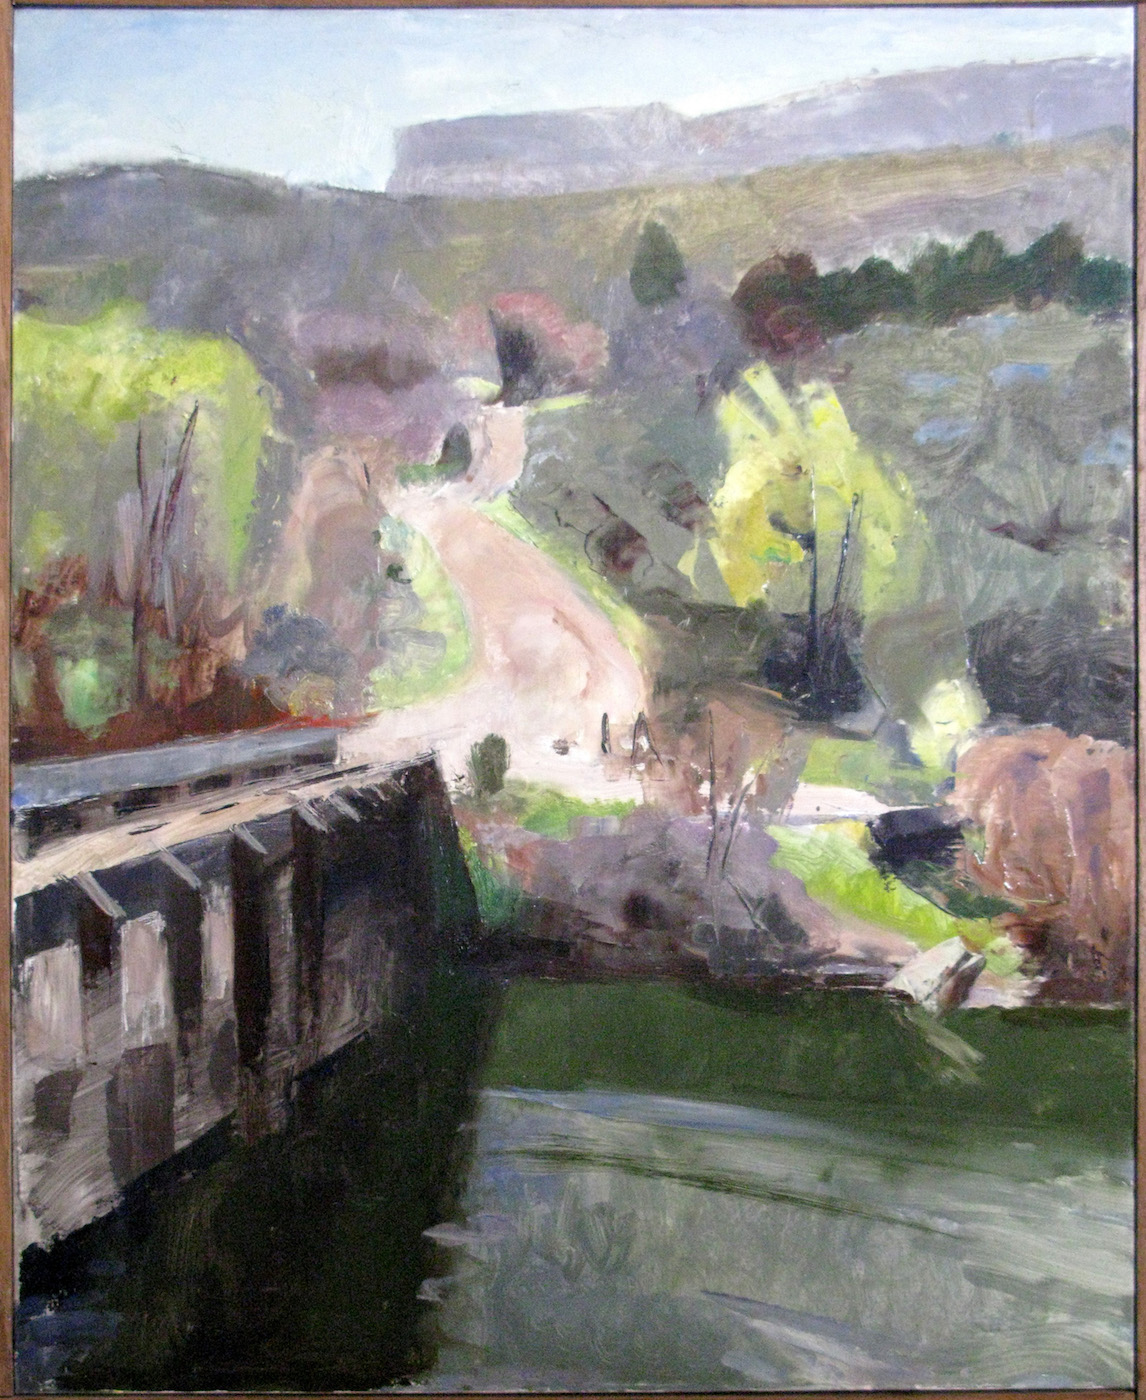 Pilar Bridge, 20 x 16 inches, oil on linen